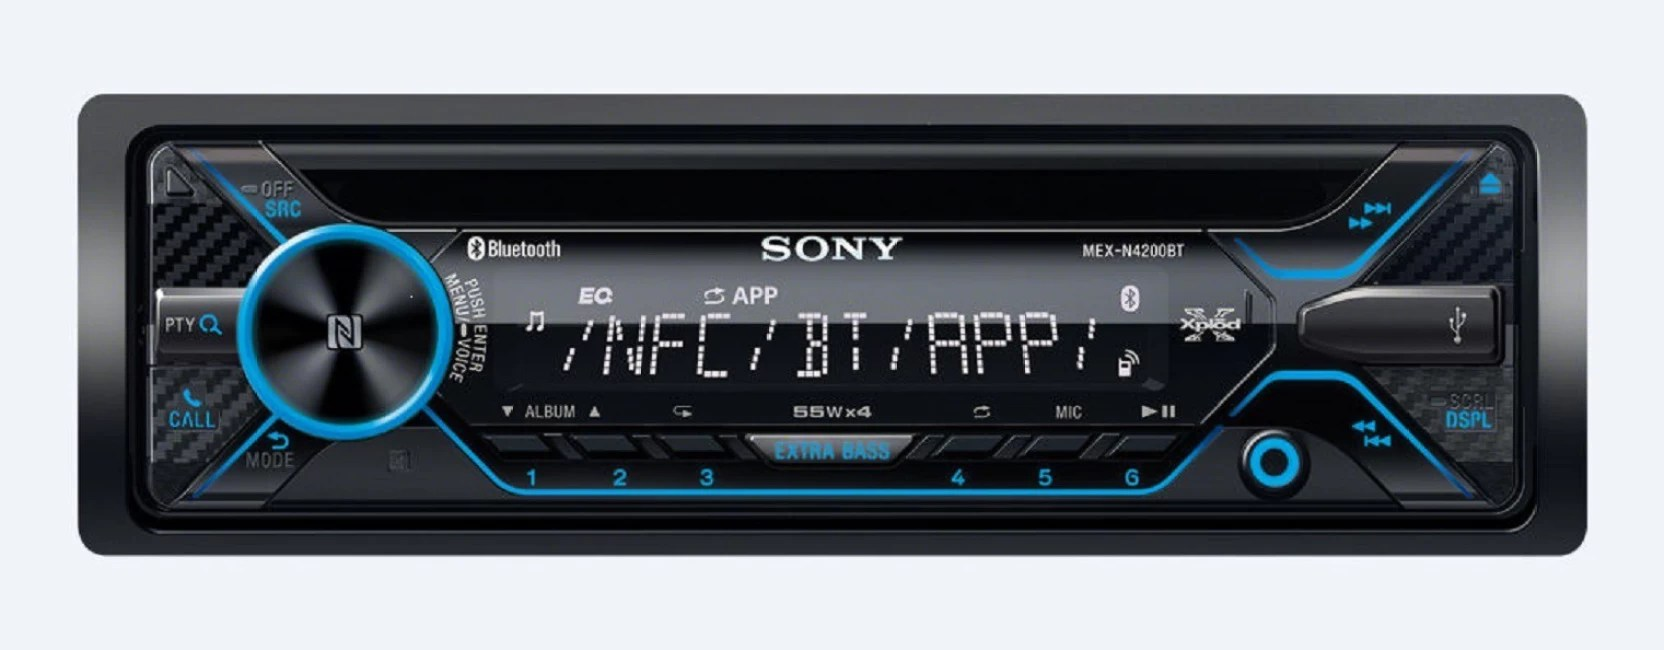 small resolution of sony mex n4200bt car stereo price in india buy sony mex n4200bt add to cart